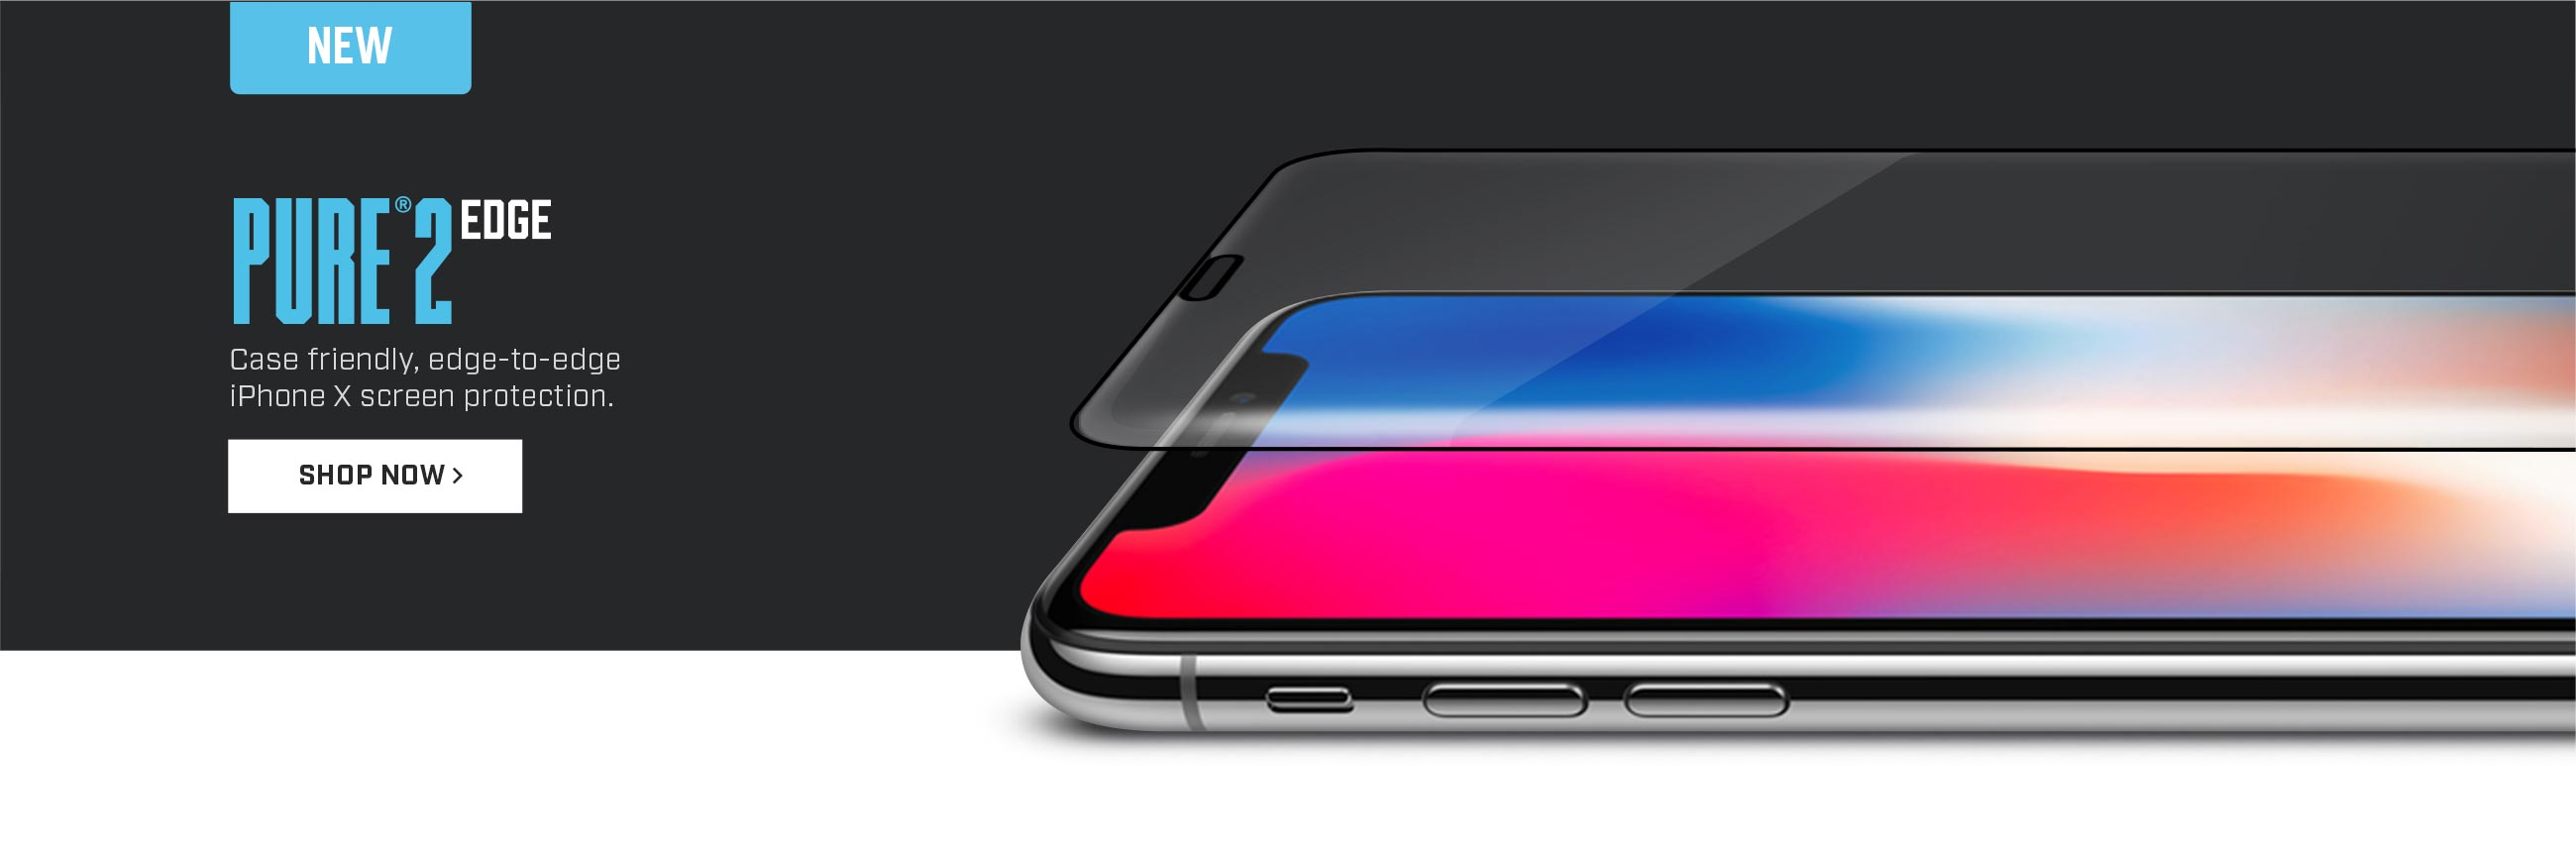 Case friendly, edge-to-edge screen protection